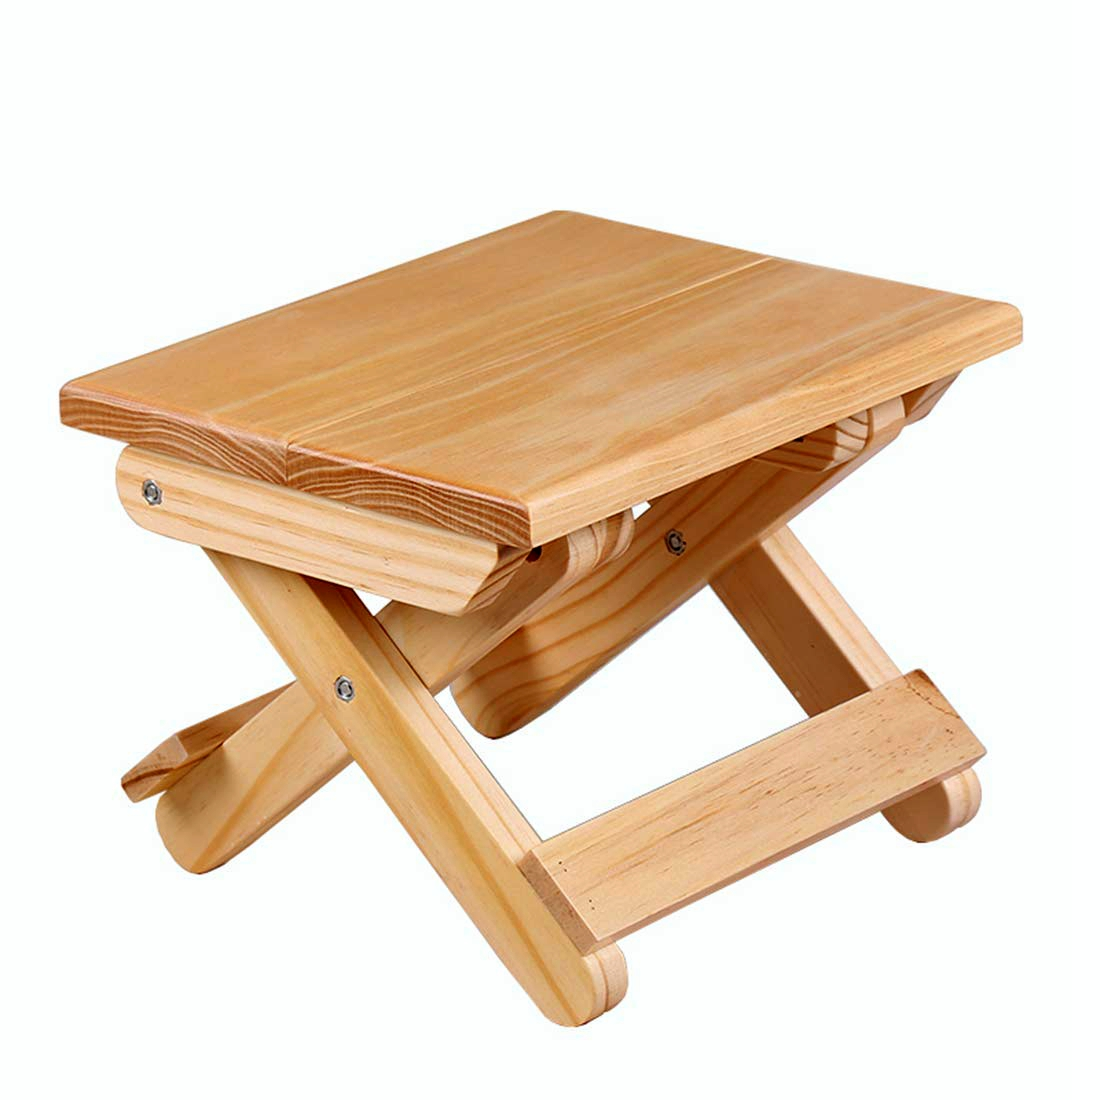 Home New designs small solid wooden colourful folding Stool for Toddlers & Kids